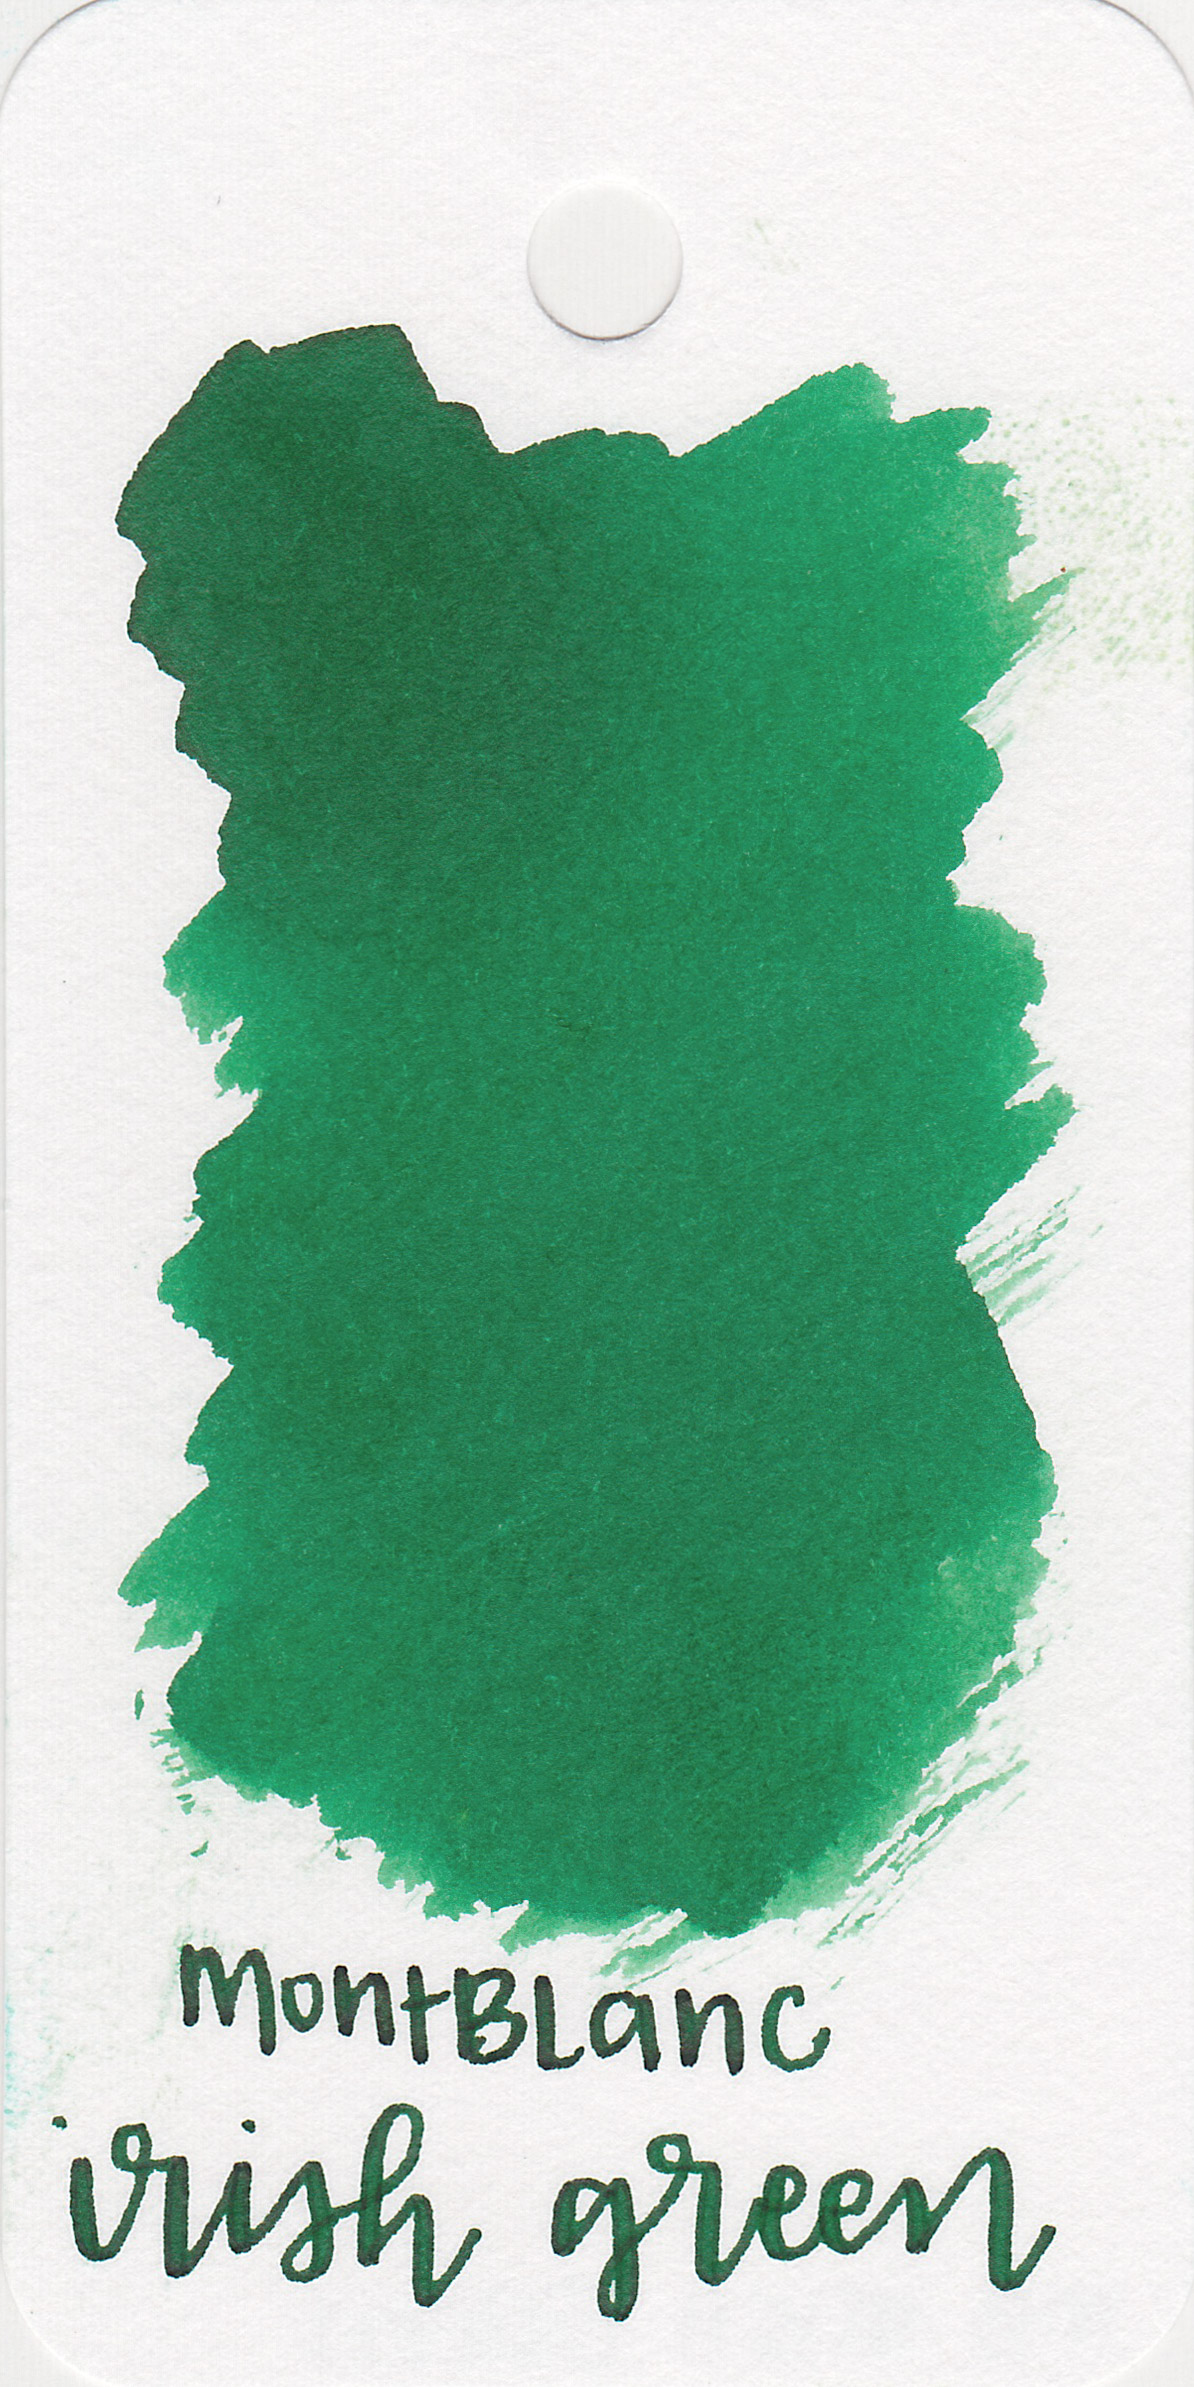 mb-irish-green-1.jpg